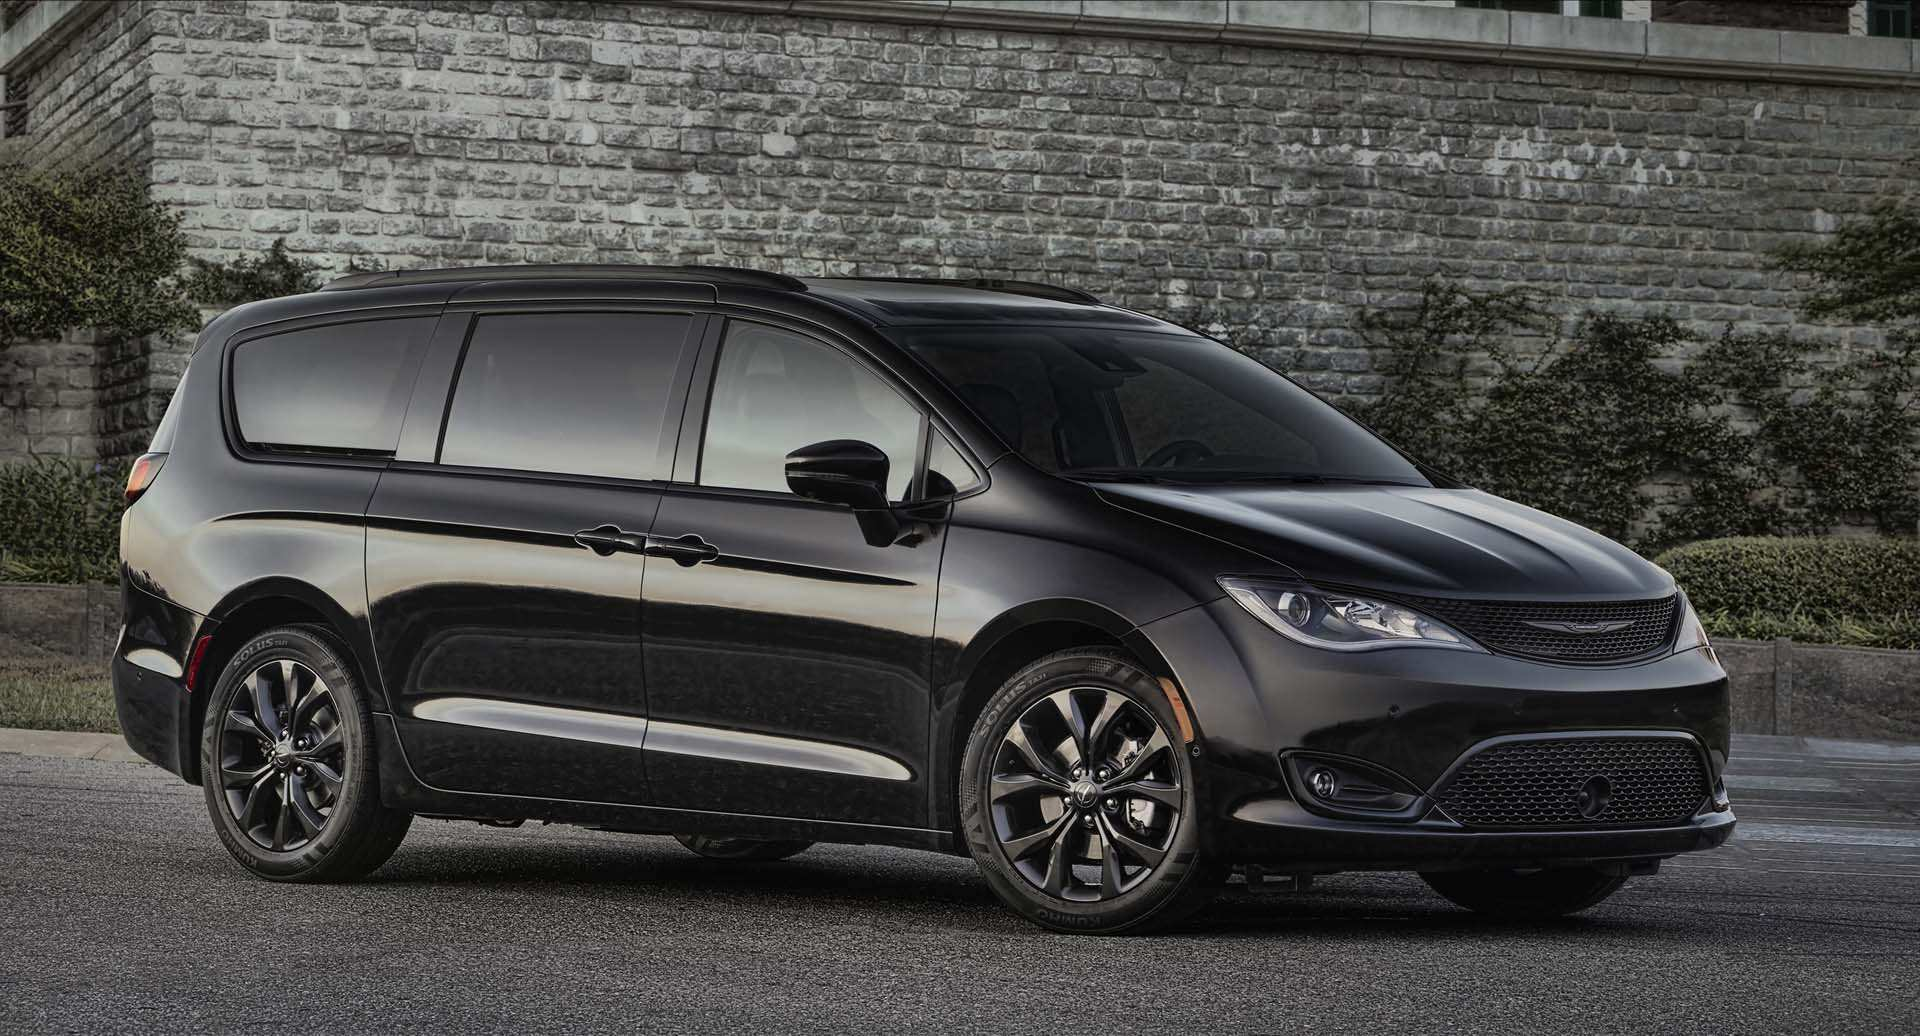 23 Great 2019 Chrysler Pacifica Review First Drive with 2019 Chrysler Pacifica Review